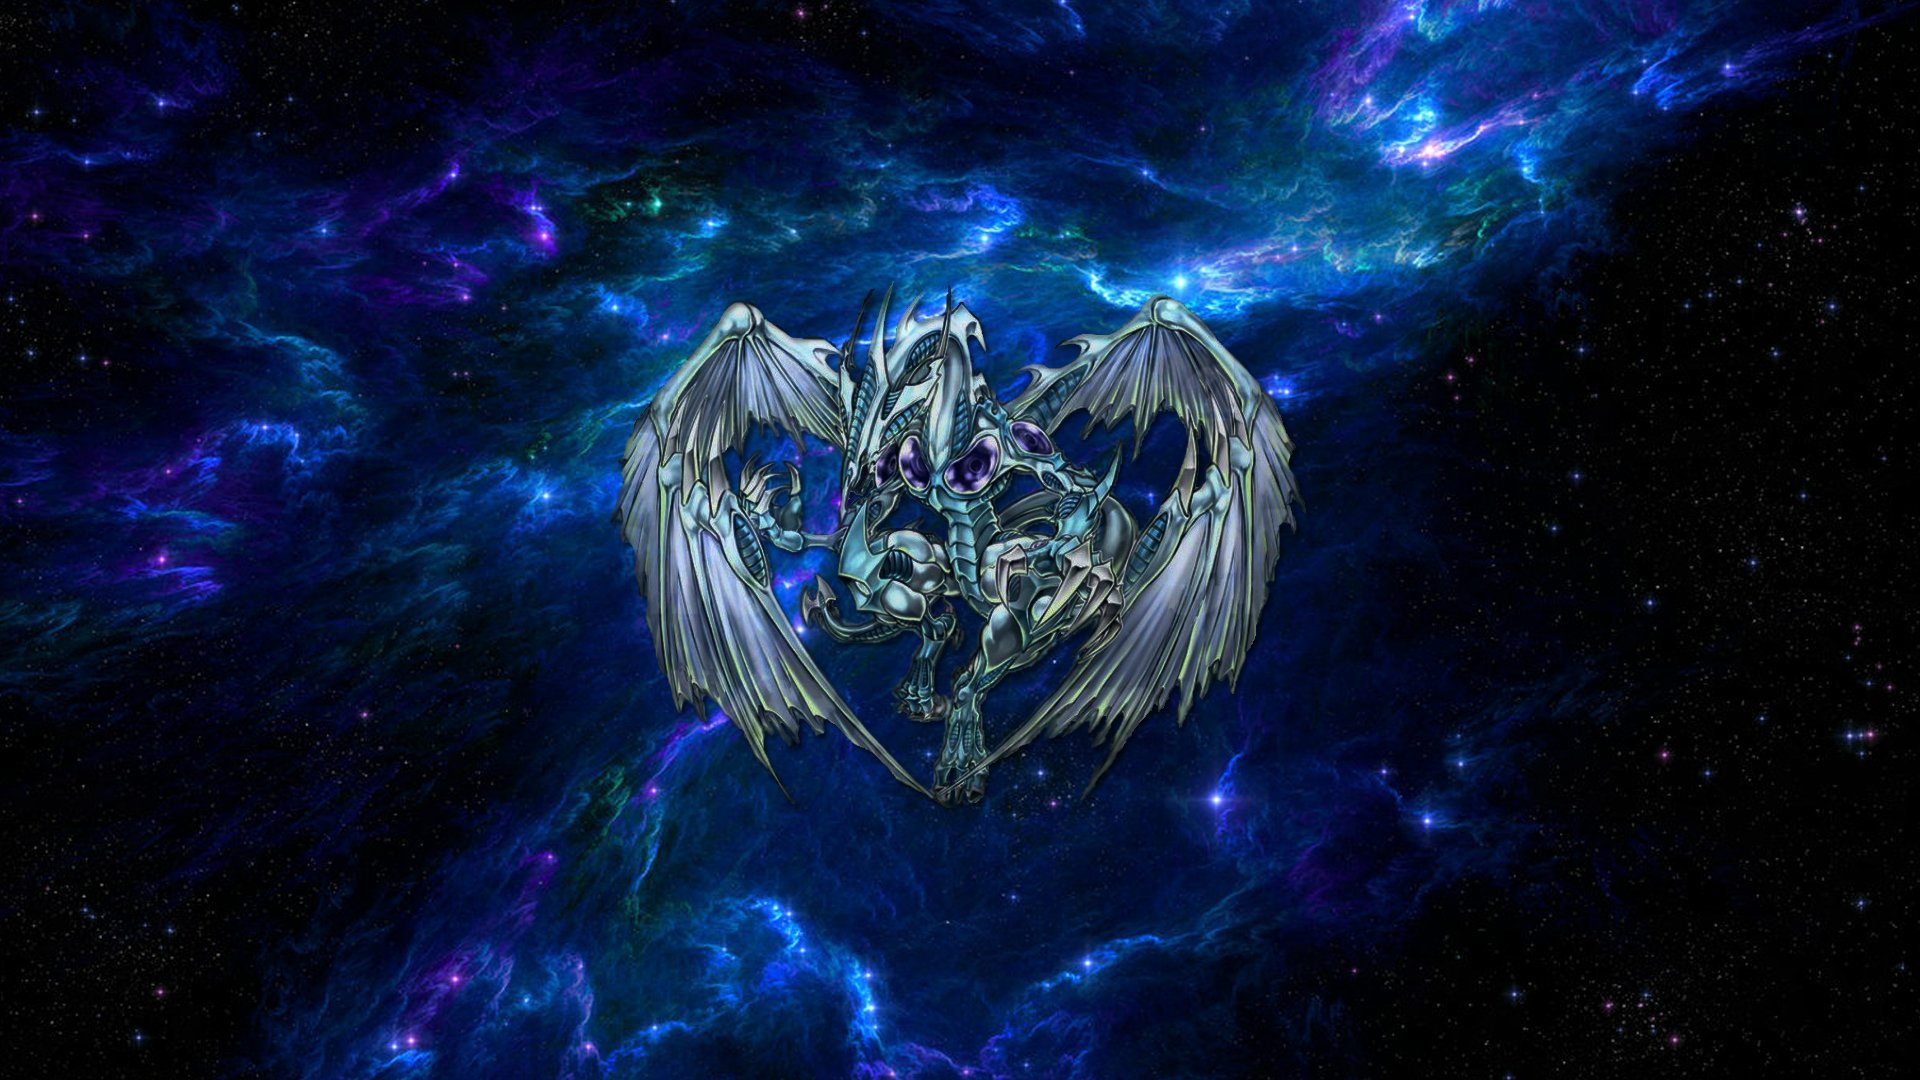 Stardust Dragon Wallpaper Wallpapersafari